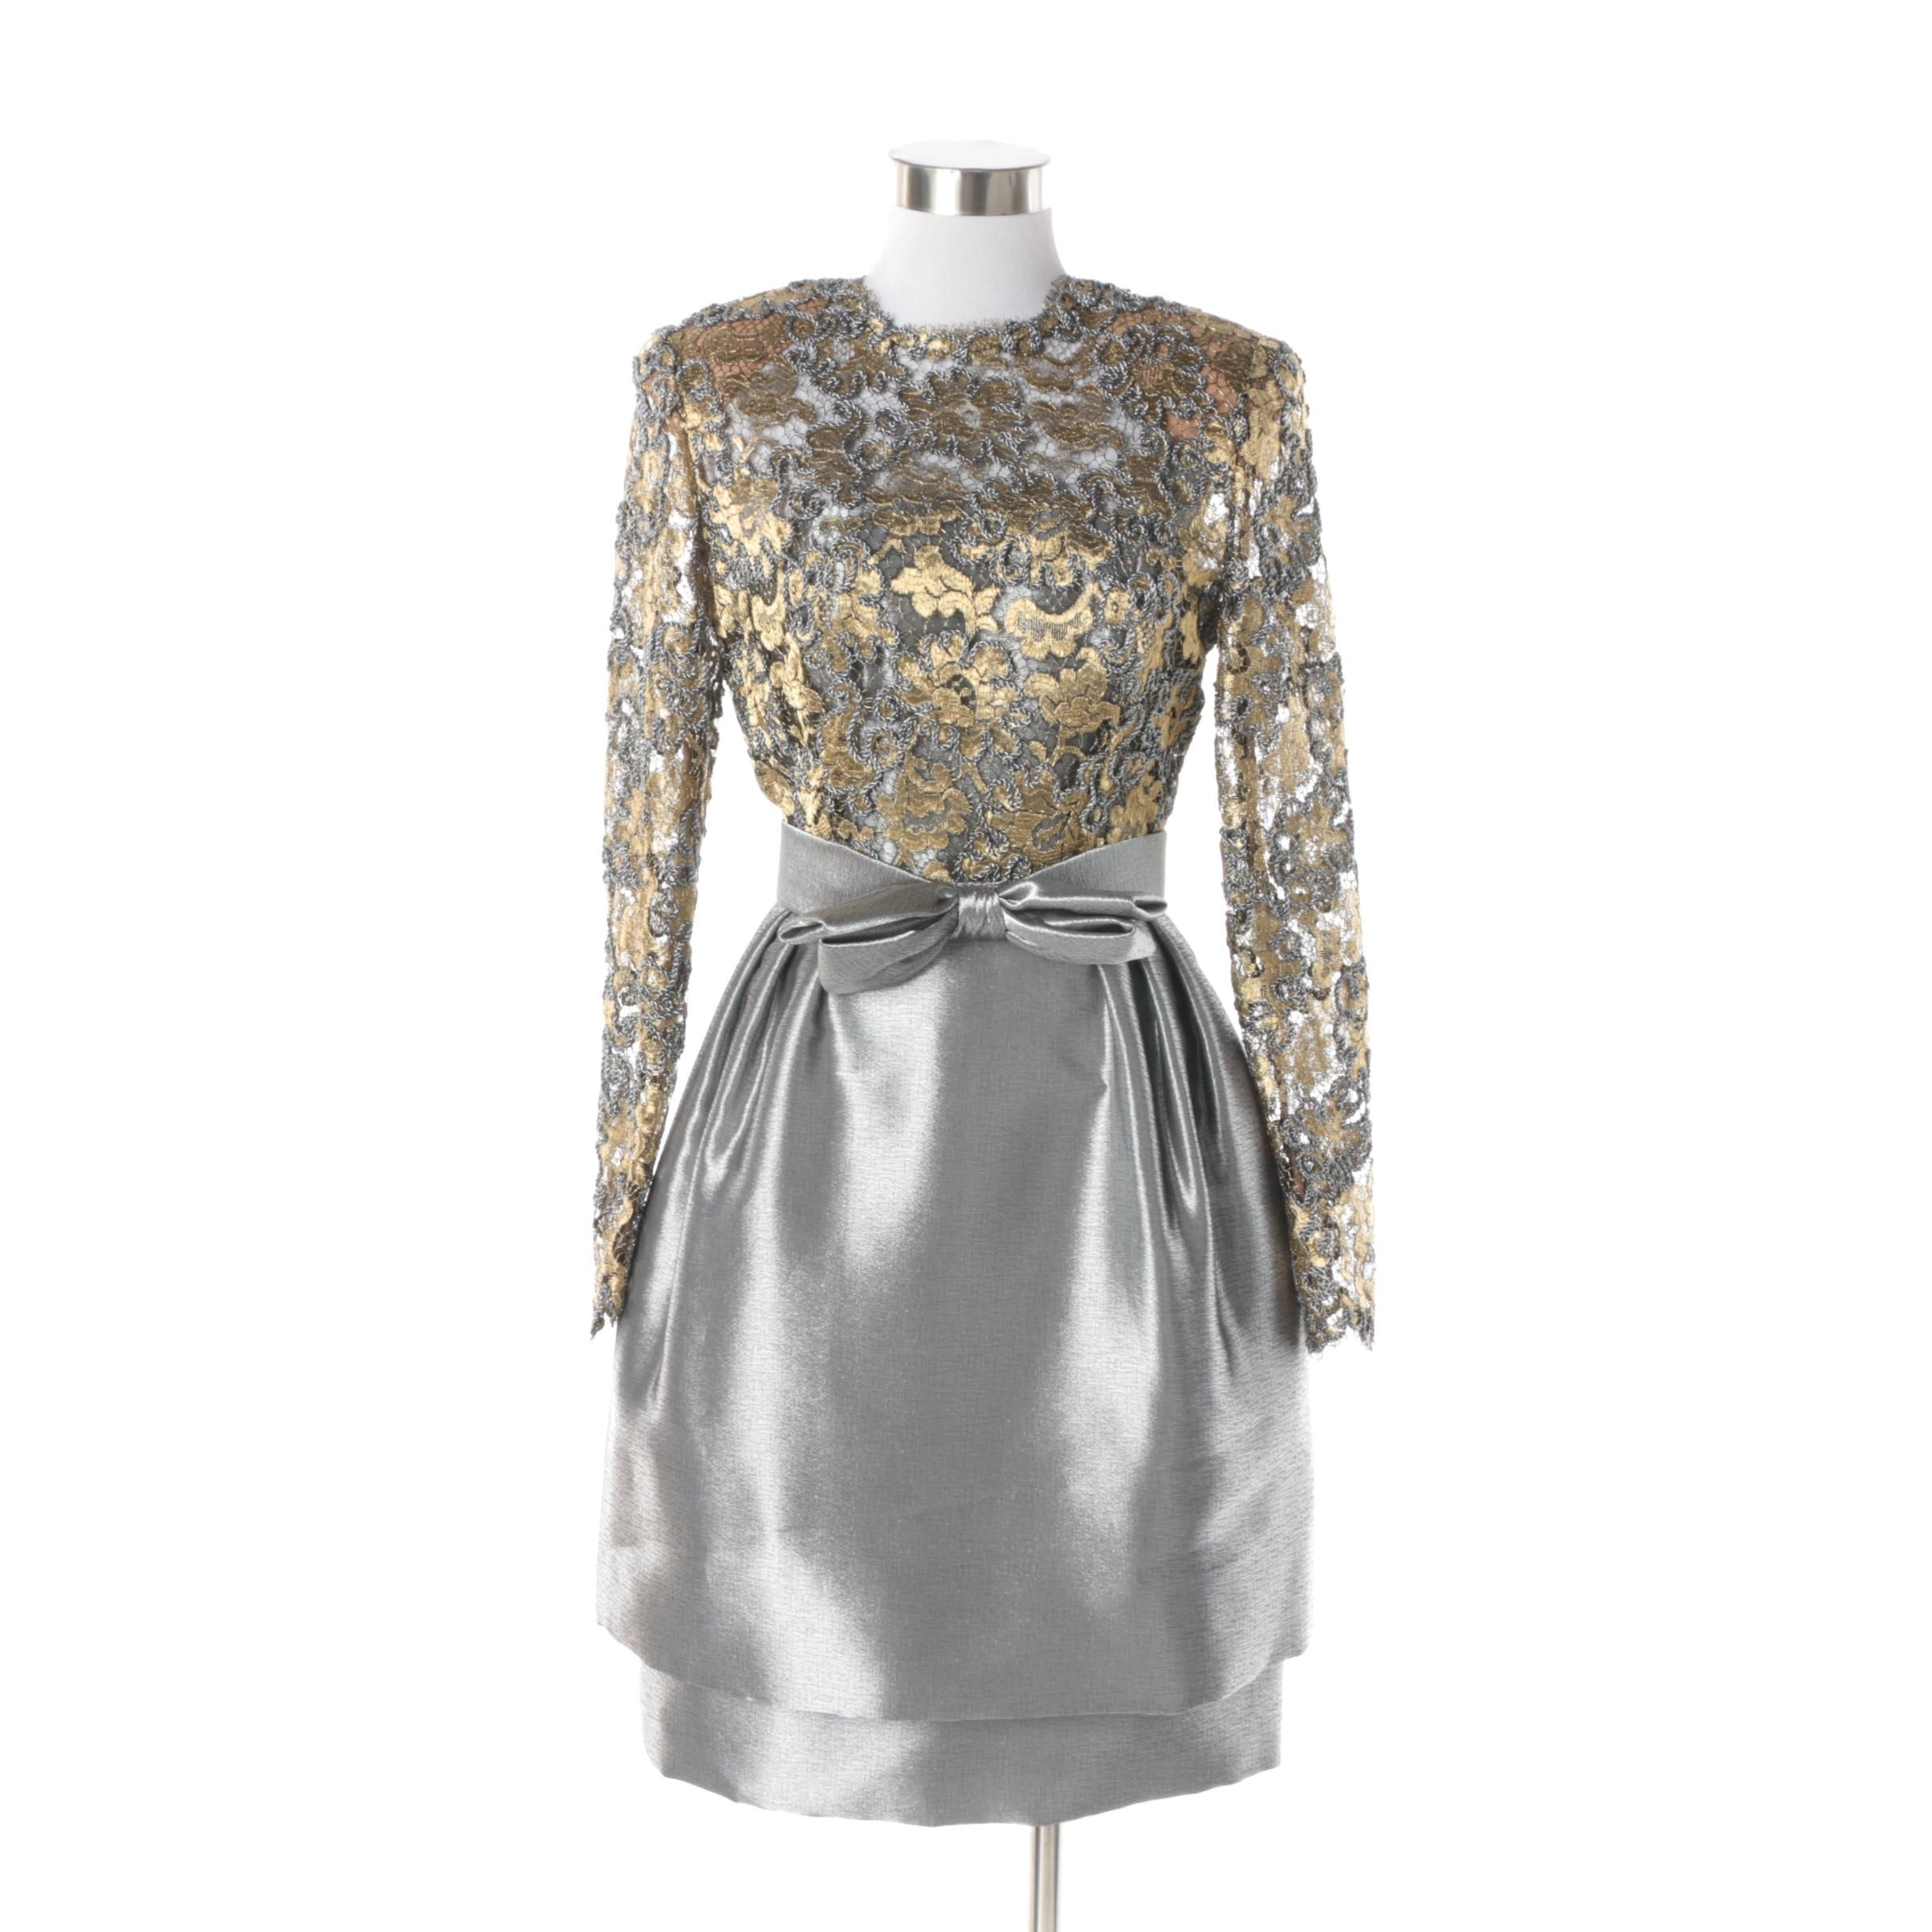 Women's Vintage Stanley Platos Martin Ross Platinum and Gold Lace Cocktail Dress